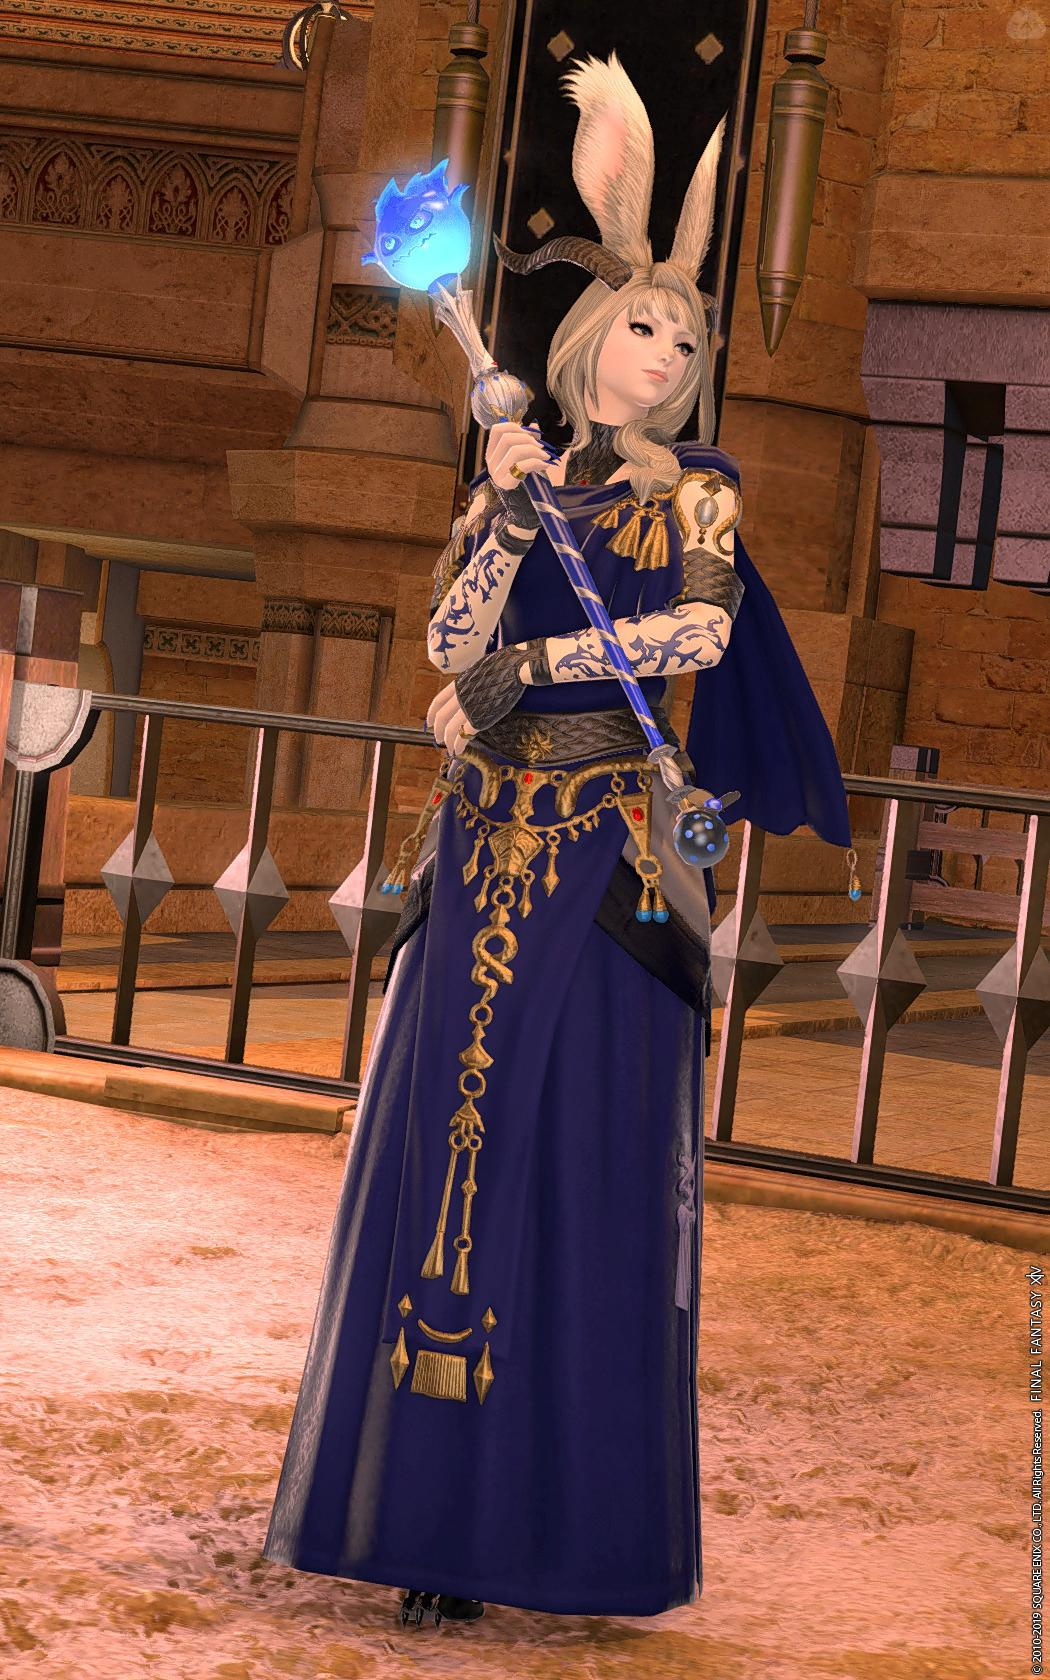 Dress Up Blue Mage